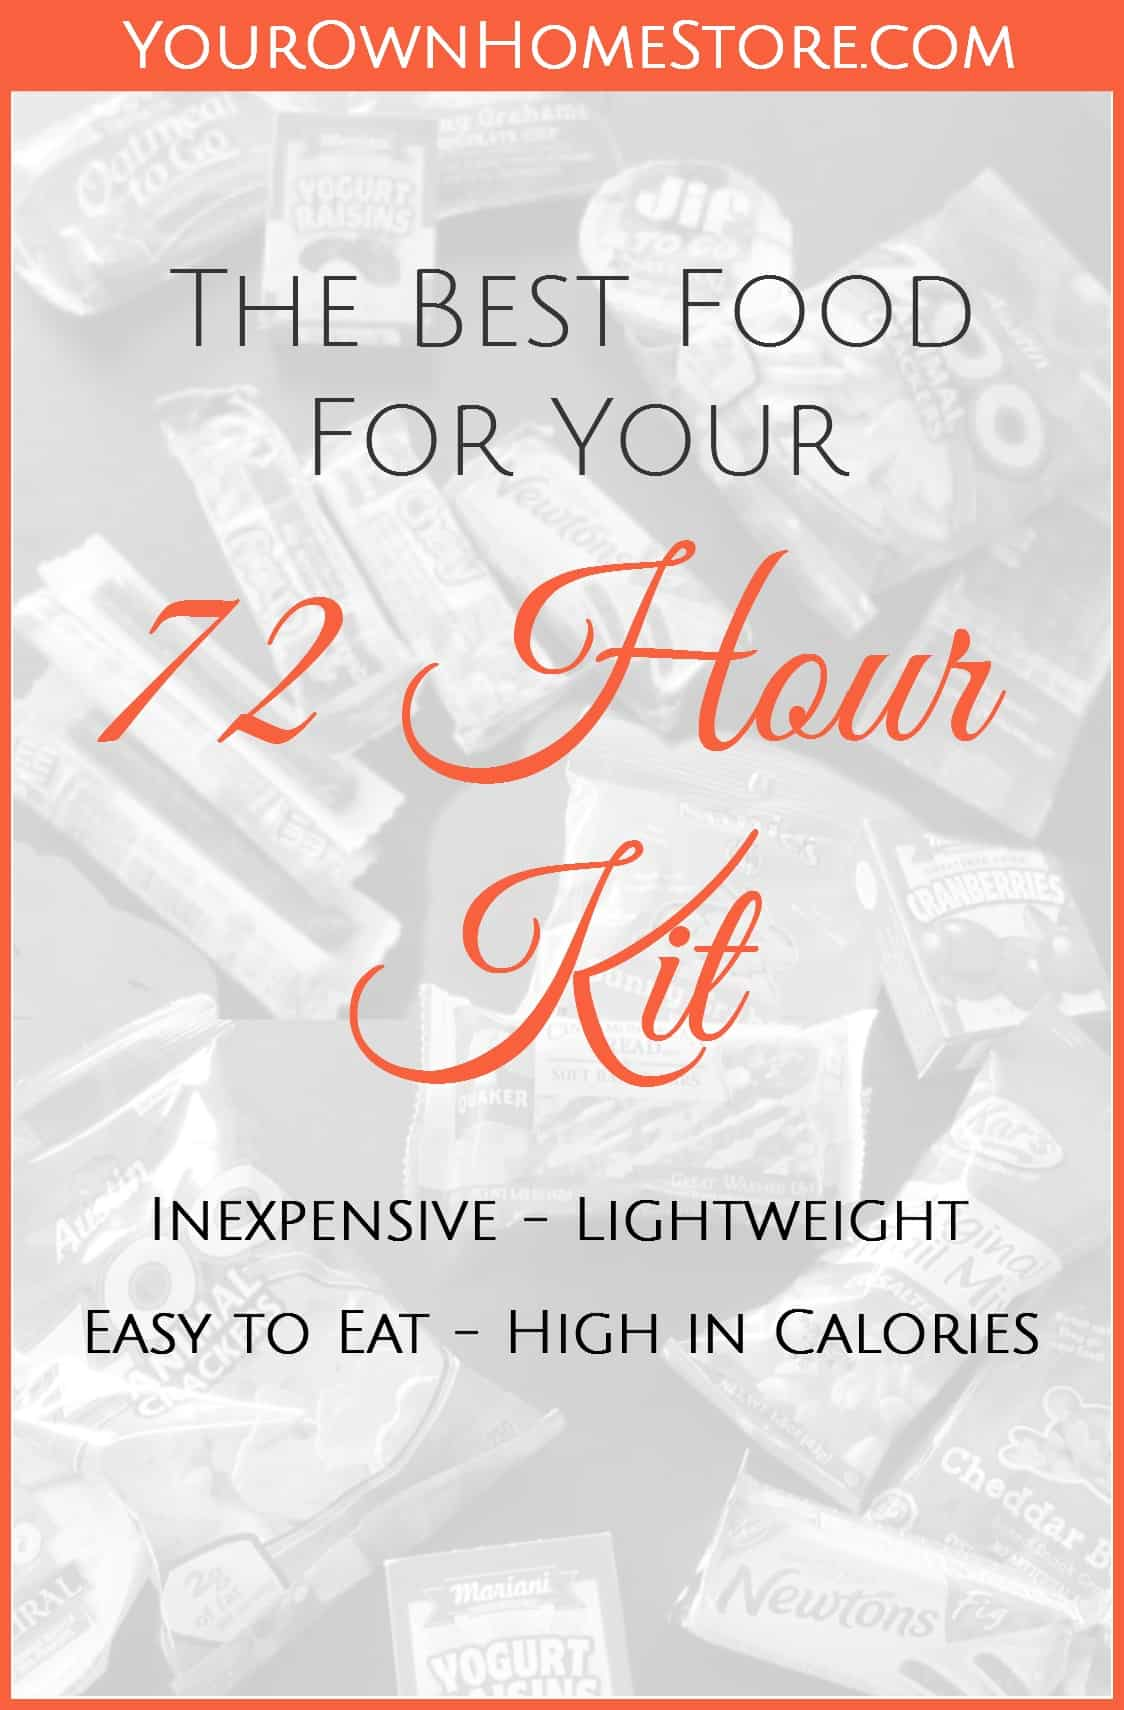 non-cook 72 hour kit foo | Smart food for your 72 hour kit | 72 hour kit food ideas